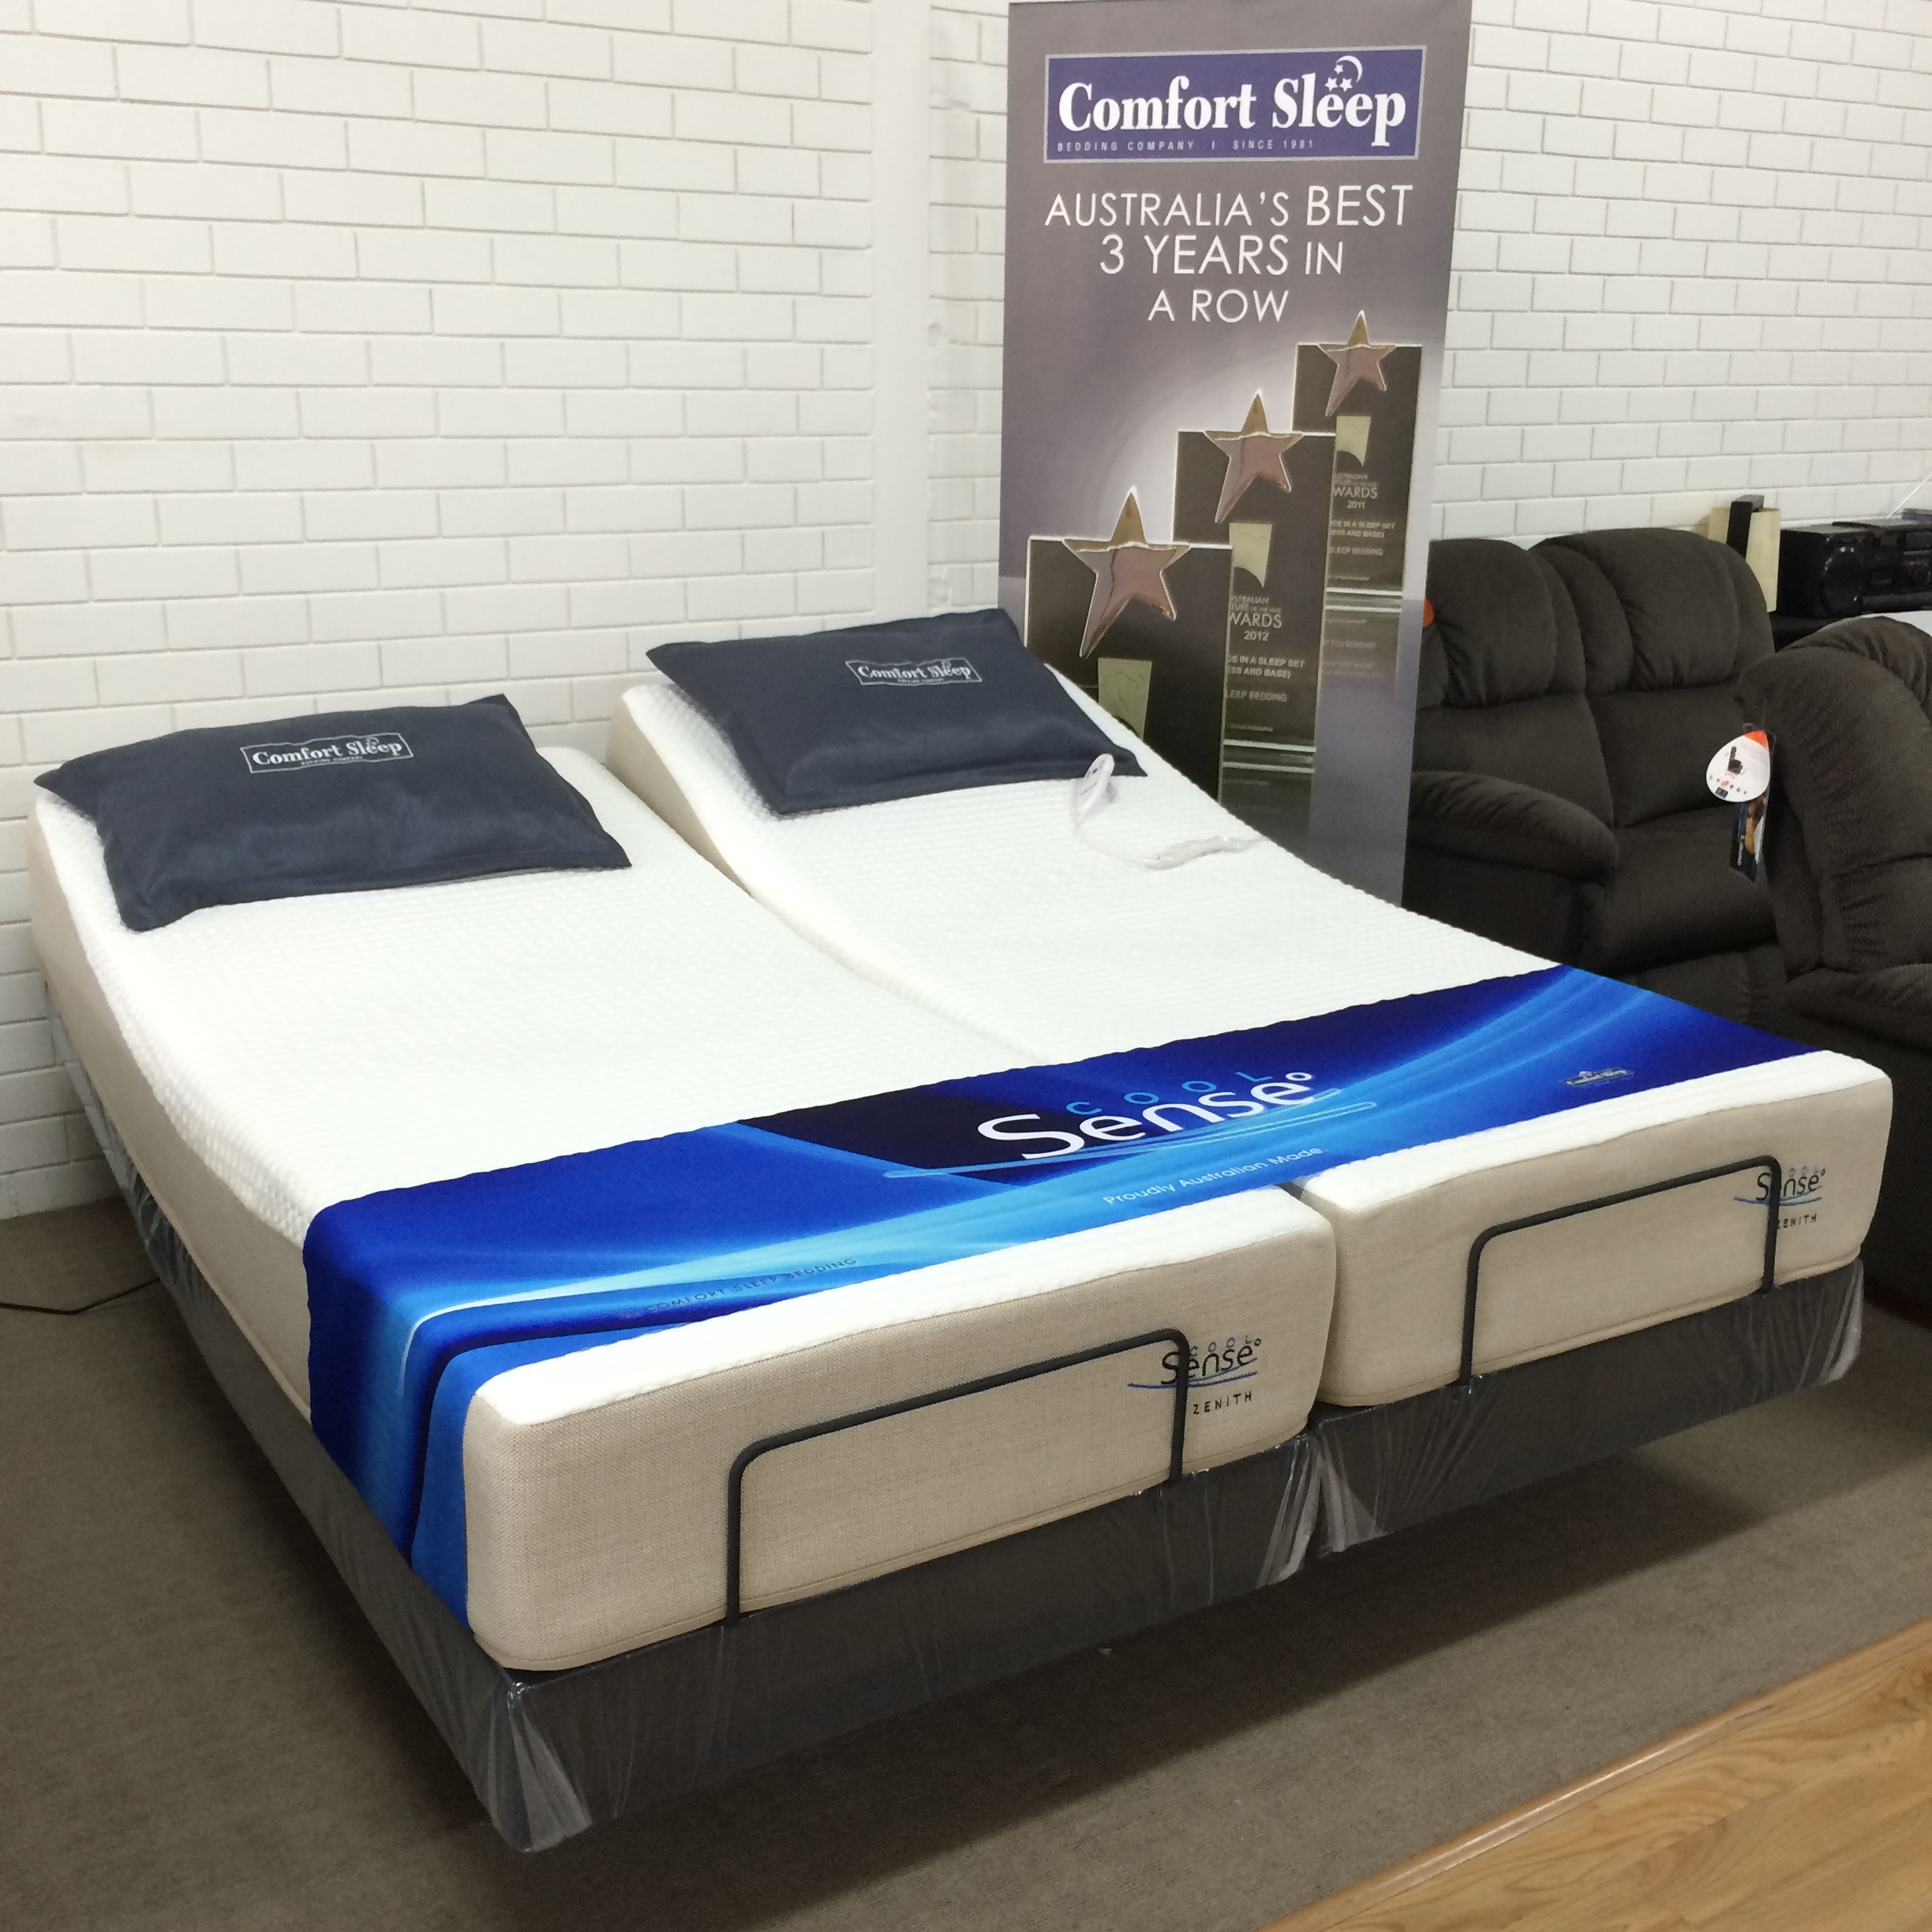 Reverie adjustable bed 7s textured motionflex base with zenith cool sense mattress split king Mattress king